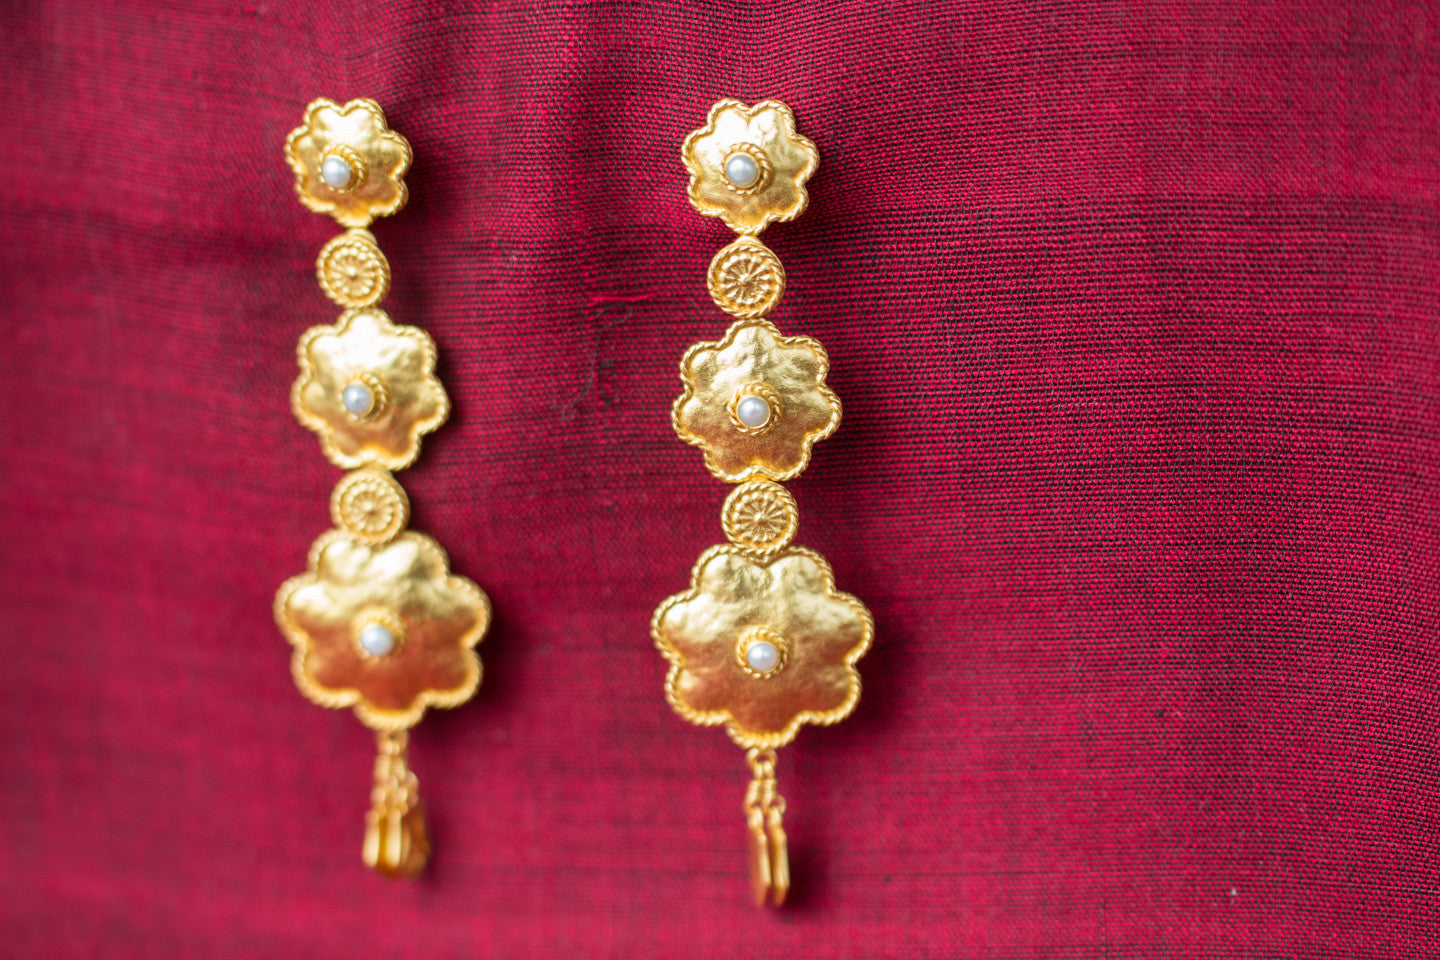 20a469-silver-gold-plated-amrapali-earrings-floral-design-alternate-view